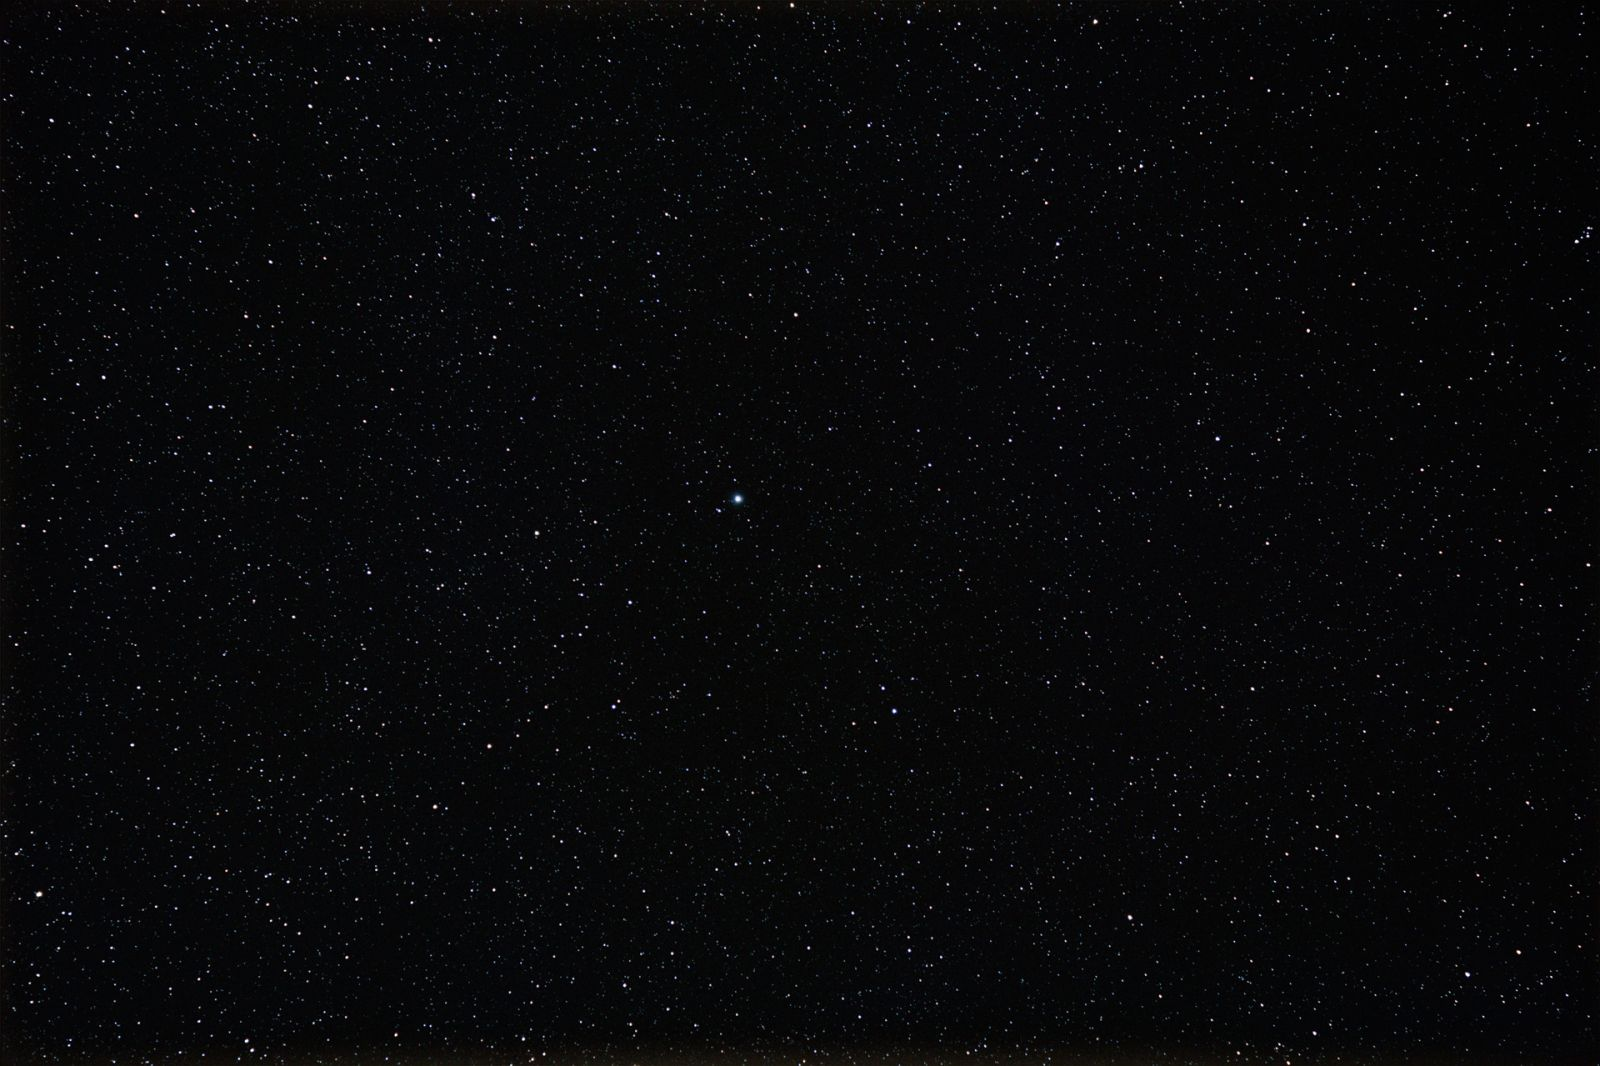 Polaris31min4darkflat